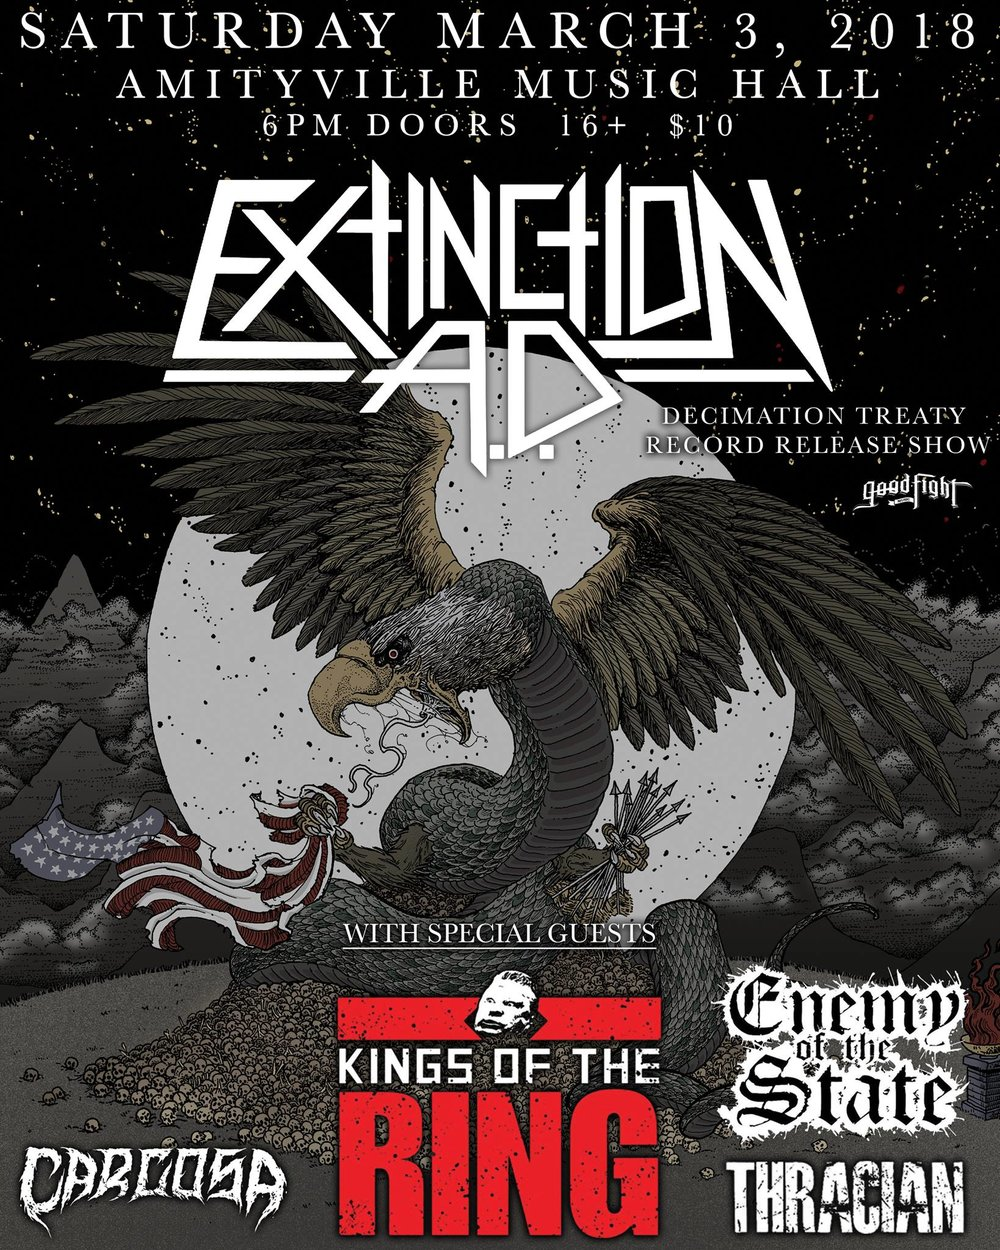 Extinction A.D. - The Kings of the RingCarcosa,Enemy Of The State,Thracian$1016+ w/ ID